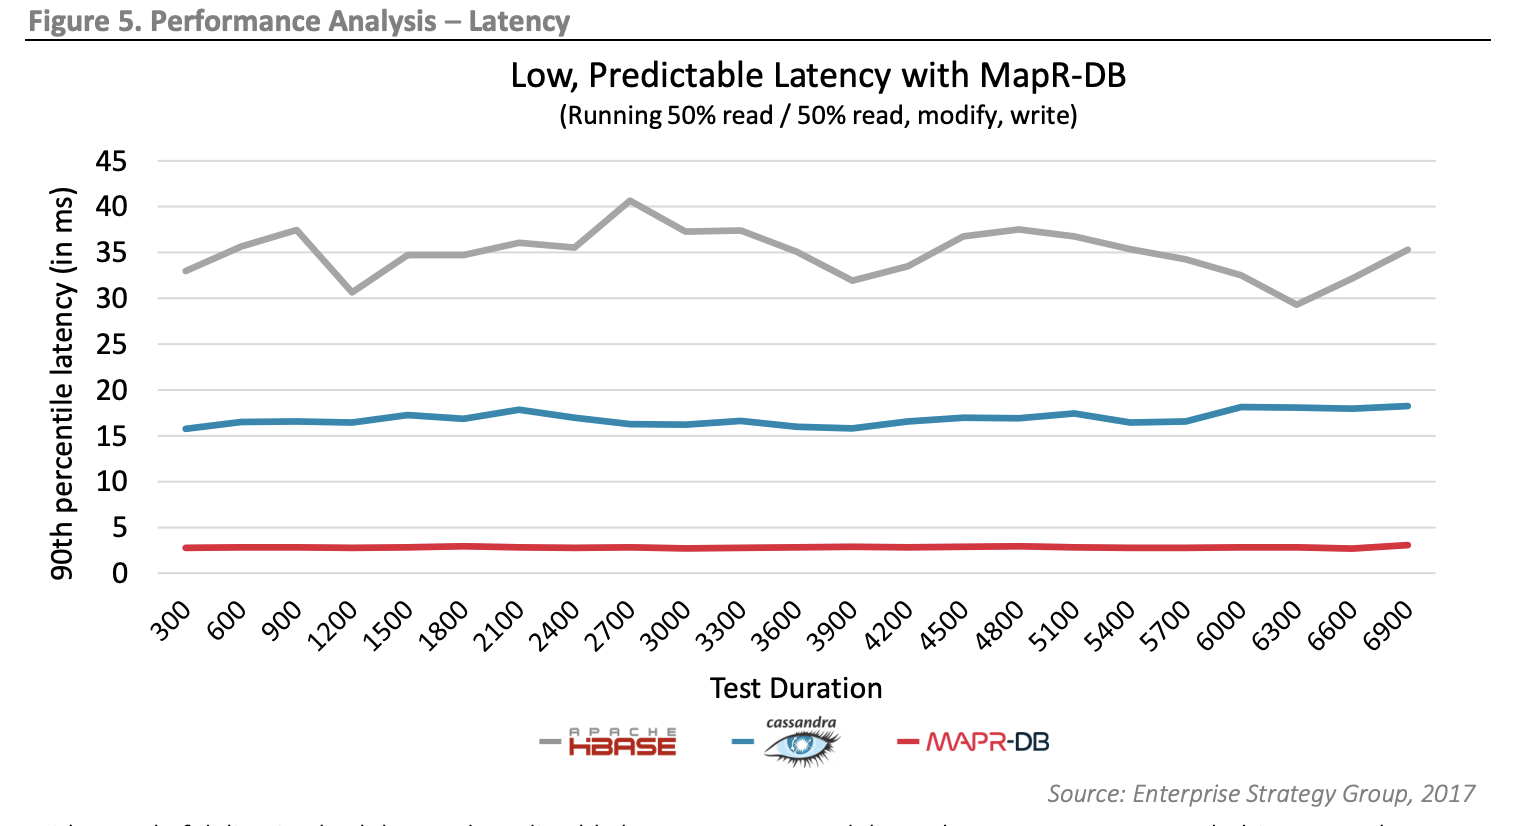 Interacting with MapR-DB - By